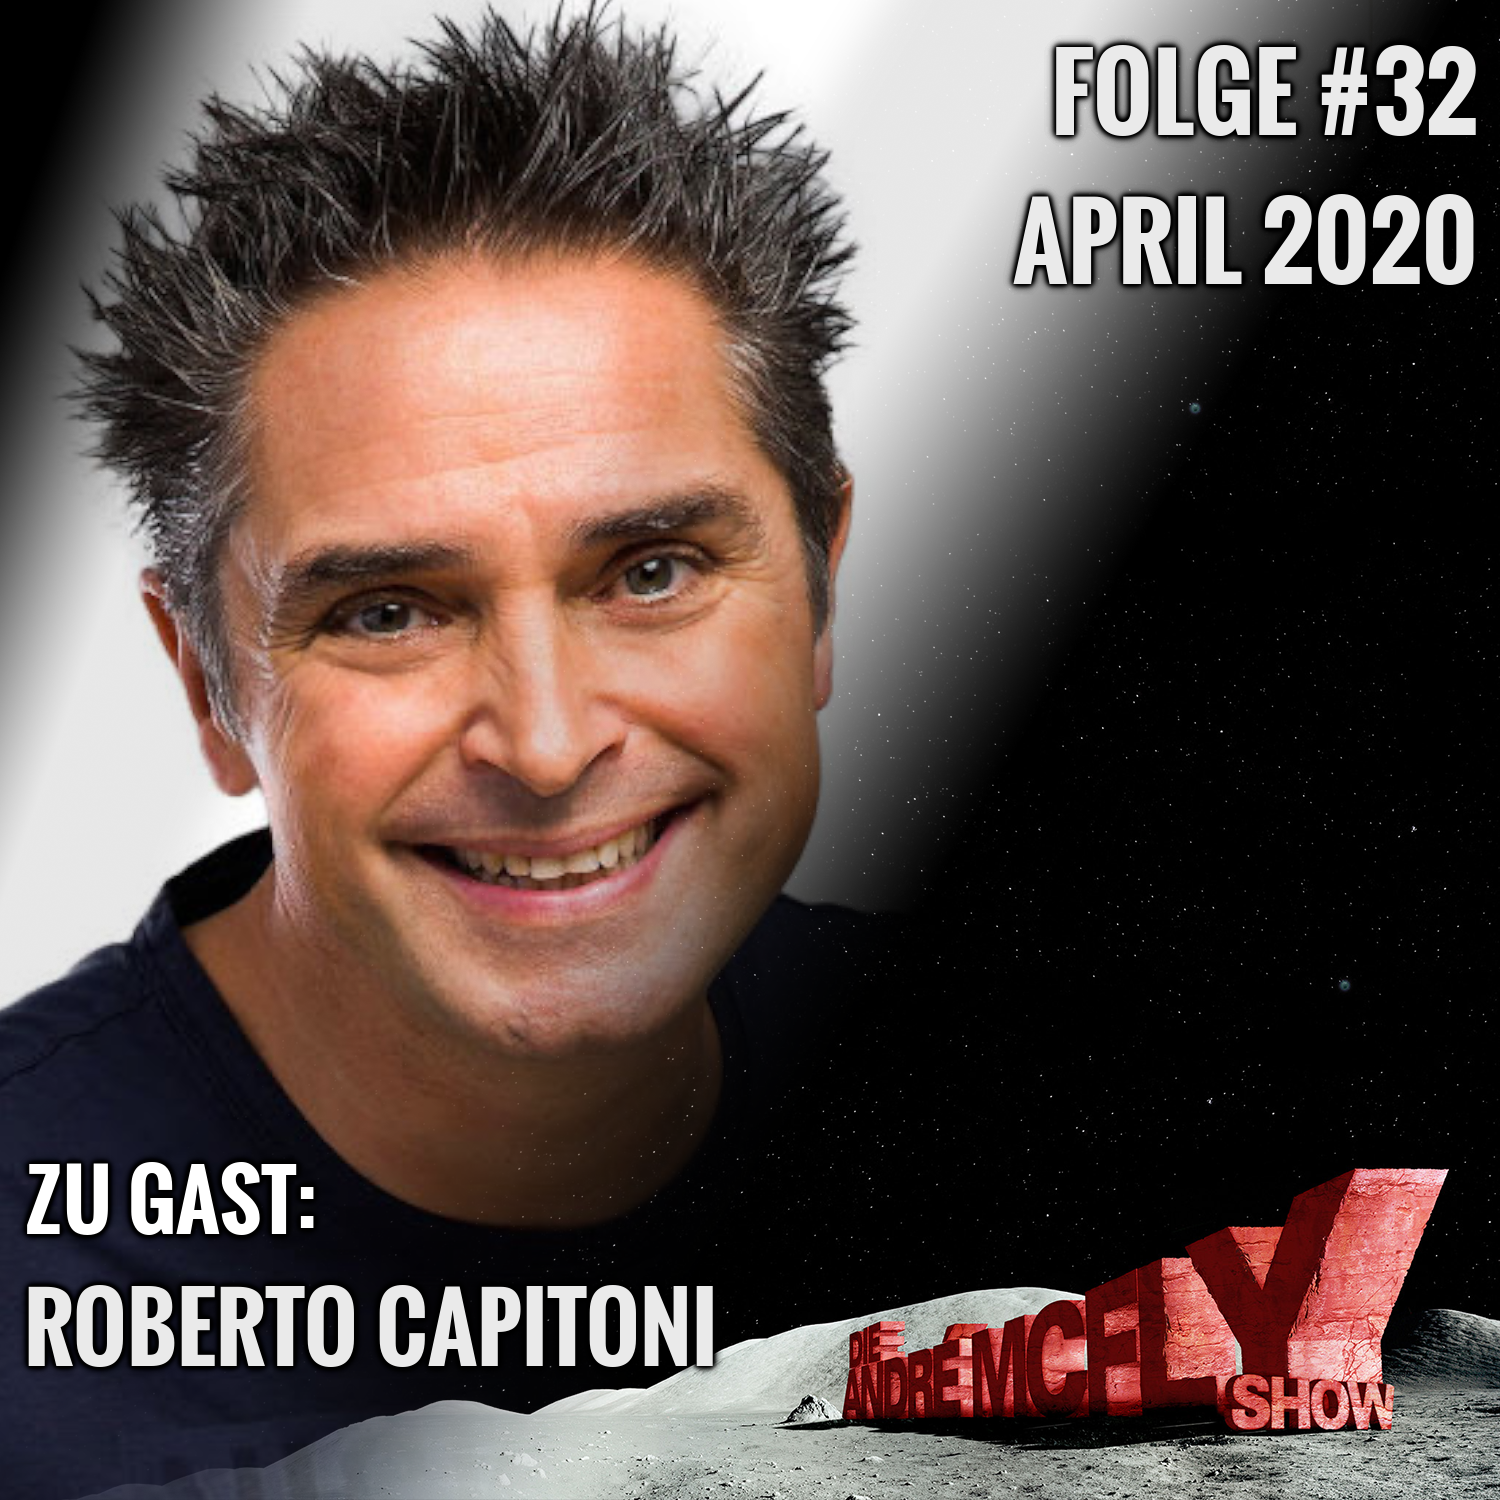 Die André McFly Show #32 | Gast: Roberto Capitoni